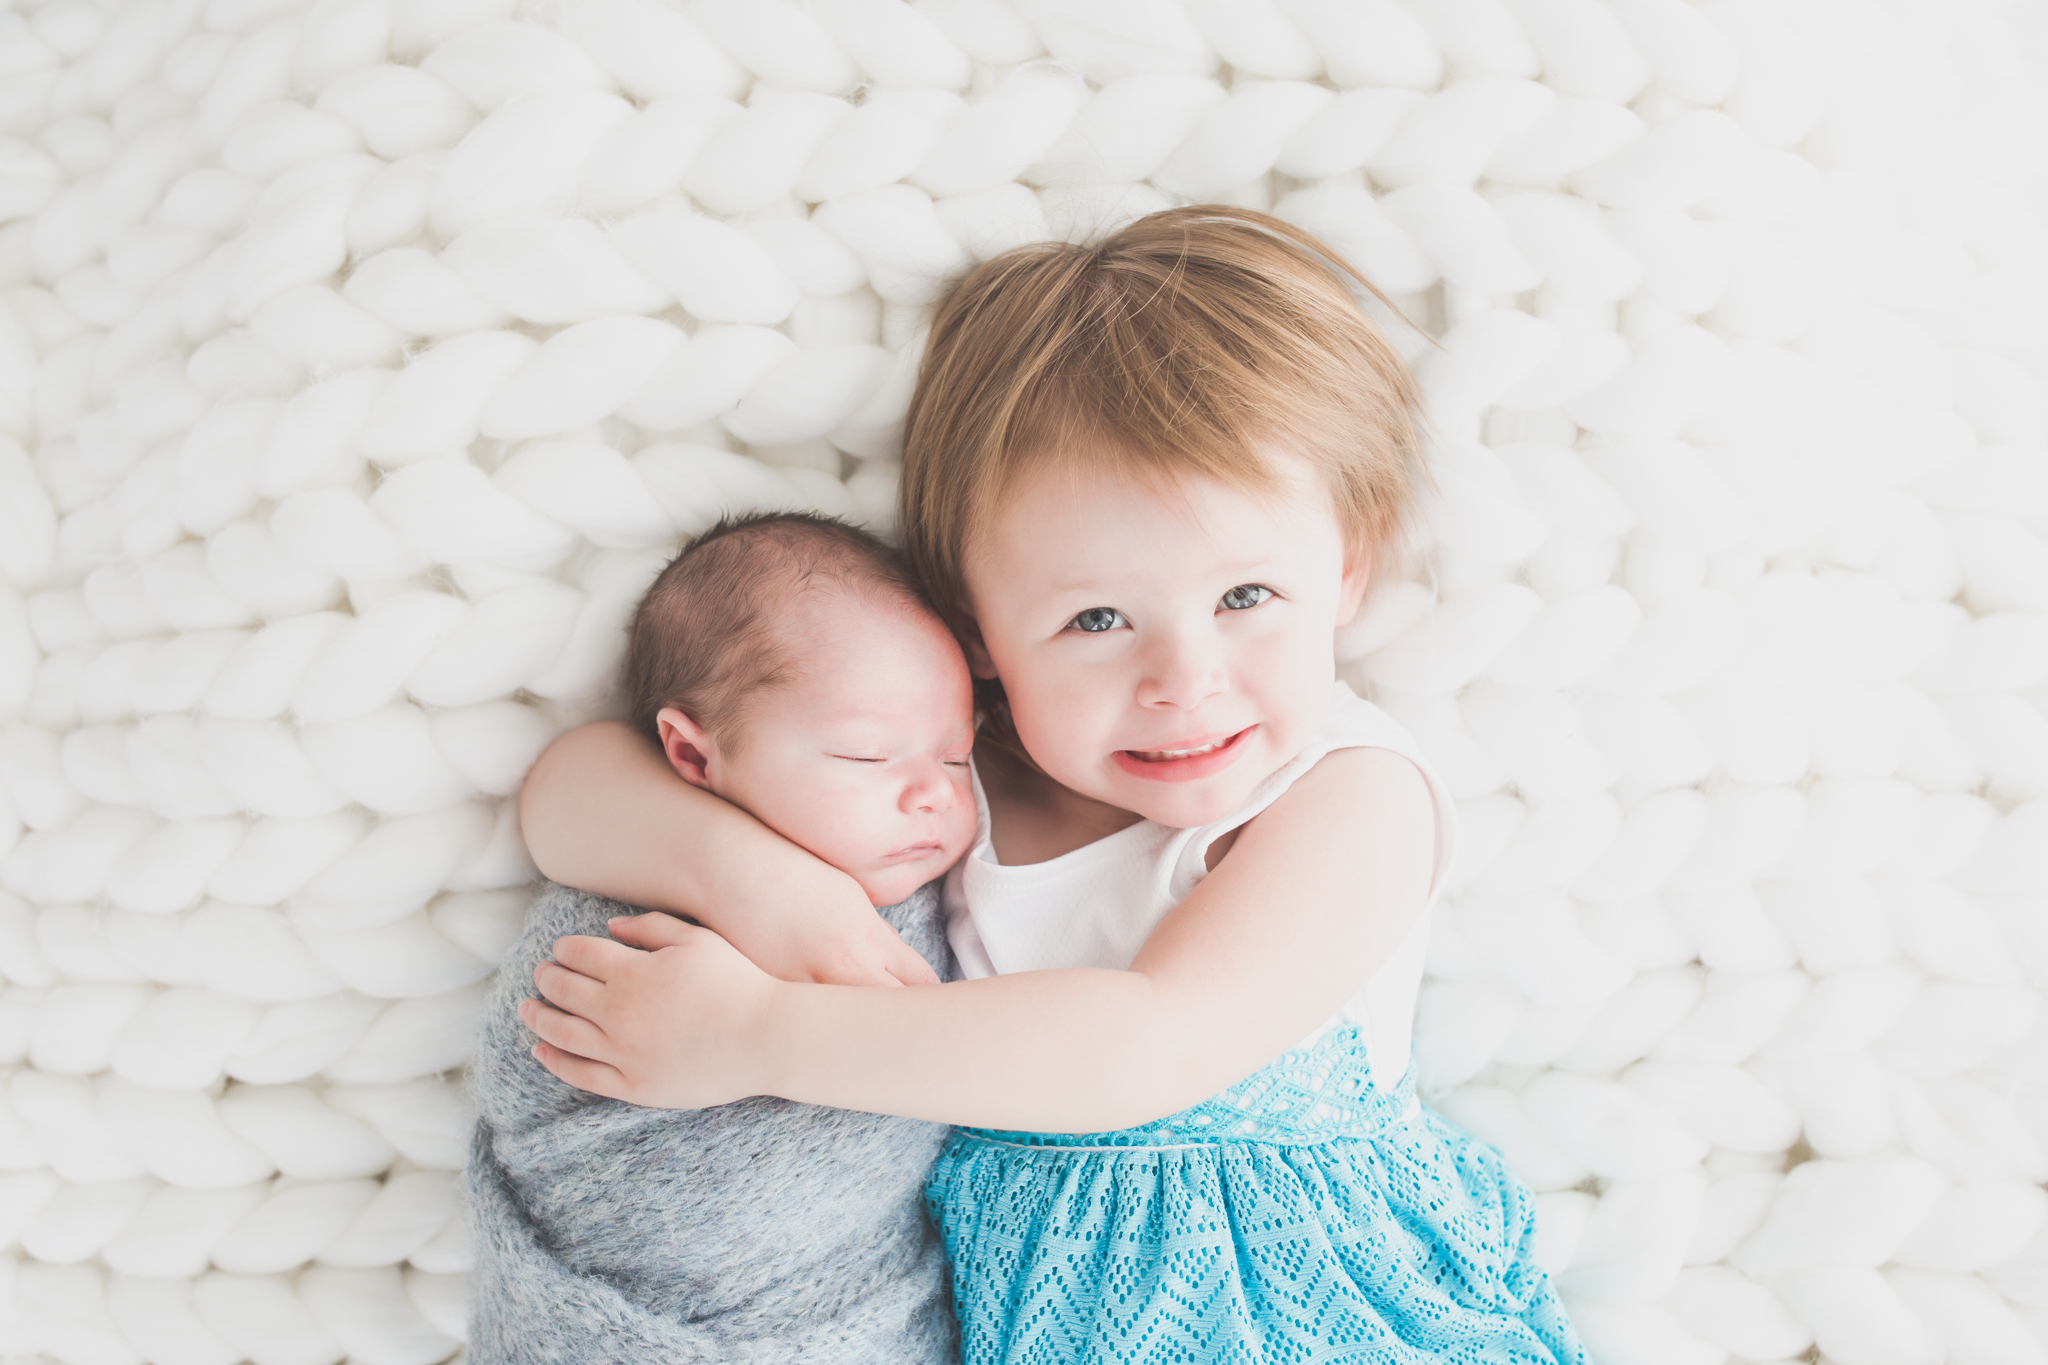 Sibling photos Newborn session photographer lifestyle studio - Cara Peterson Photography Rockford IL-7.jpg